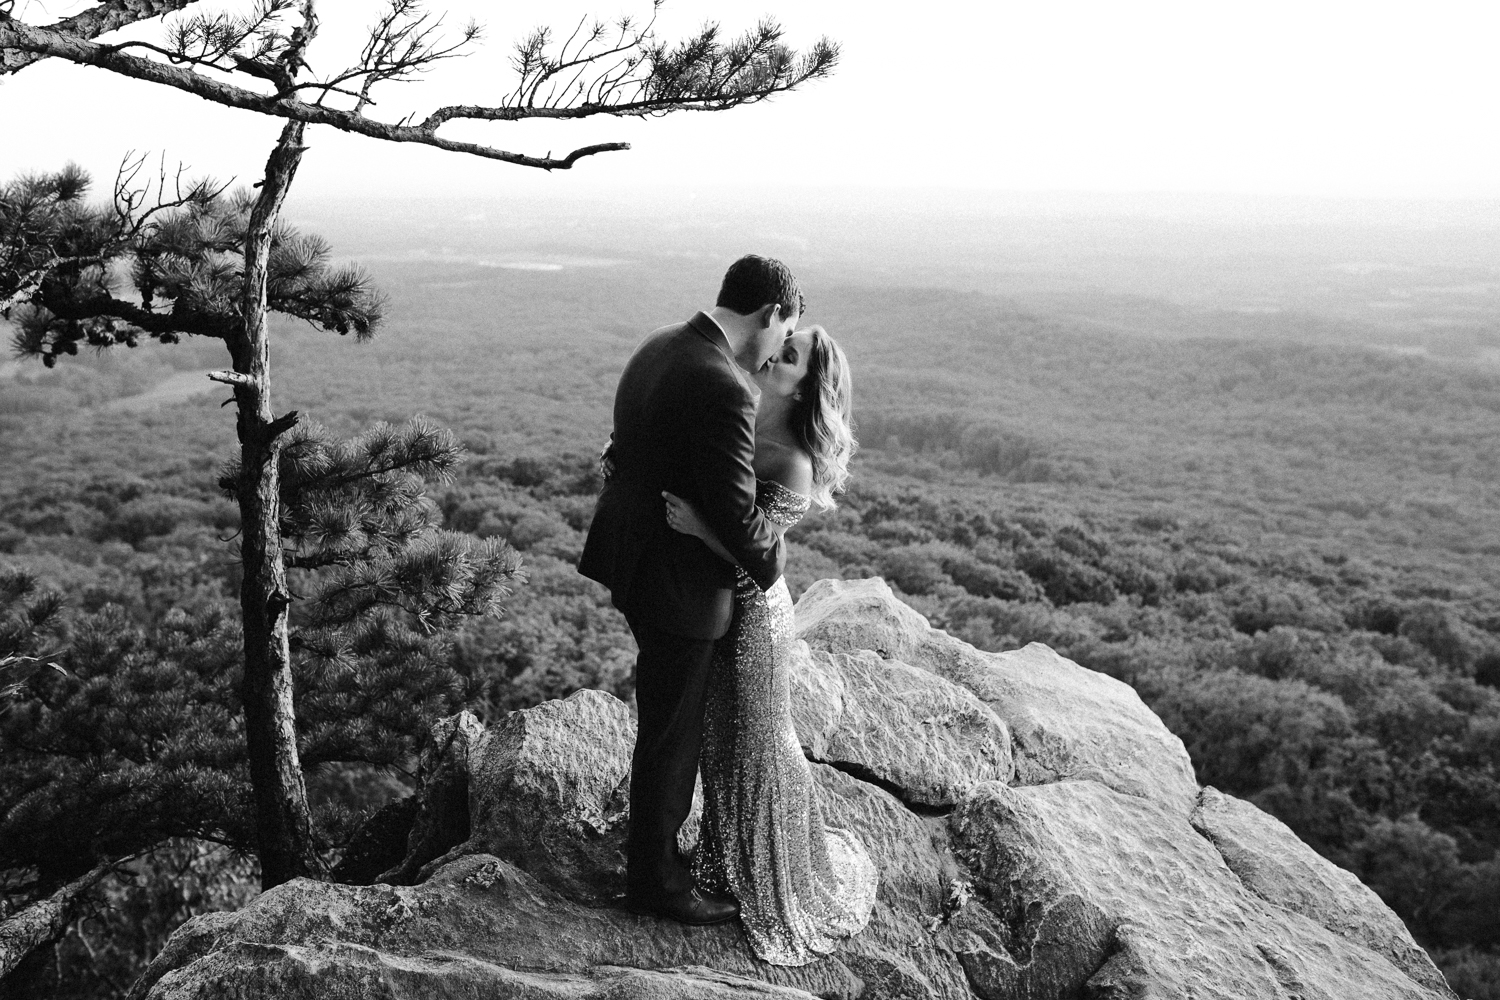 sugar_loaf_mountain_maryland_mountain_top_engagement_photographer-18.jpg